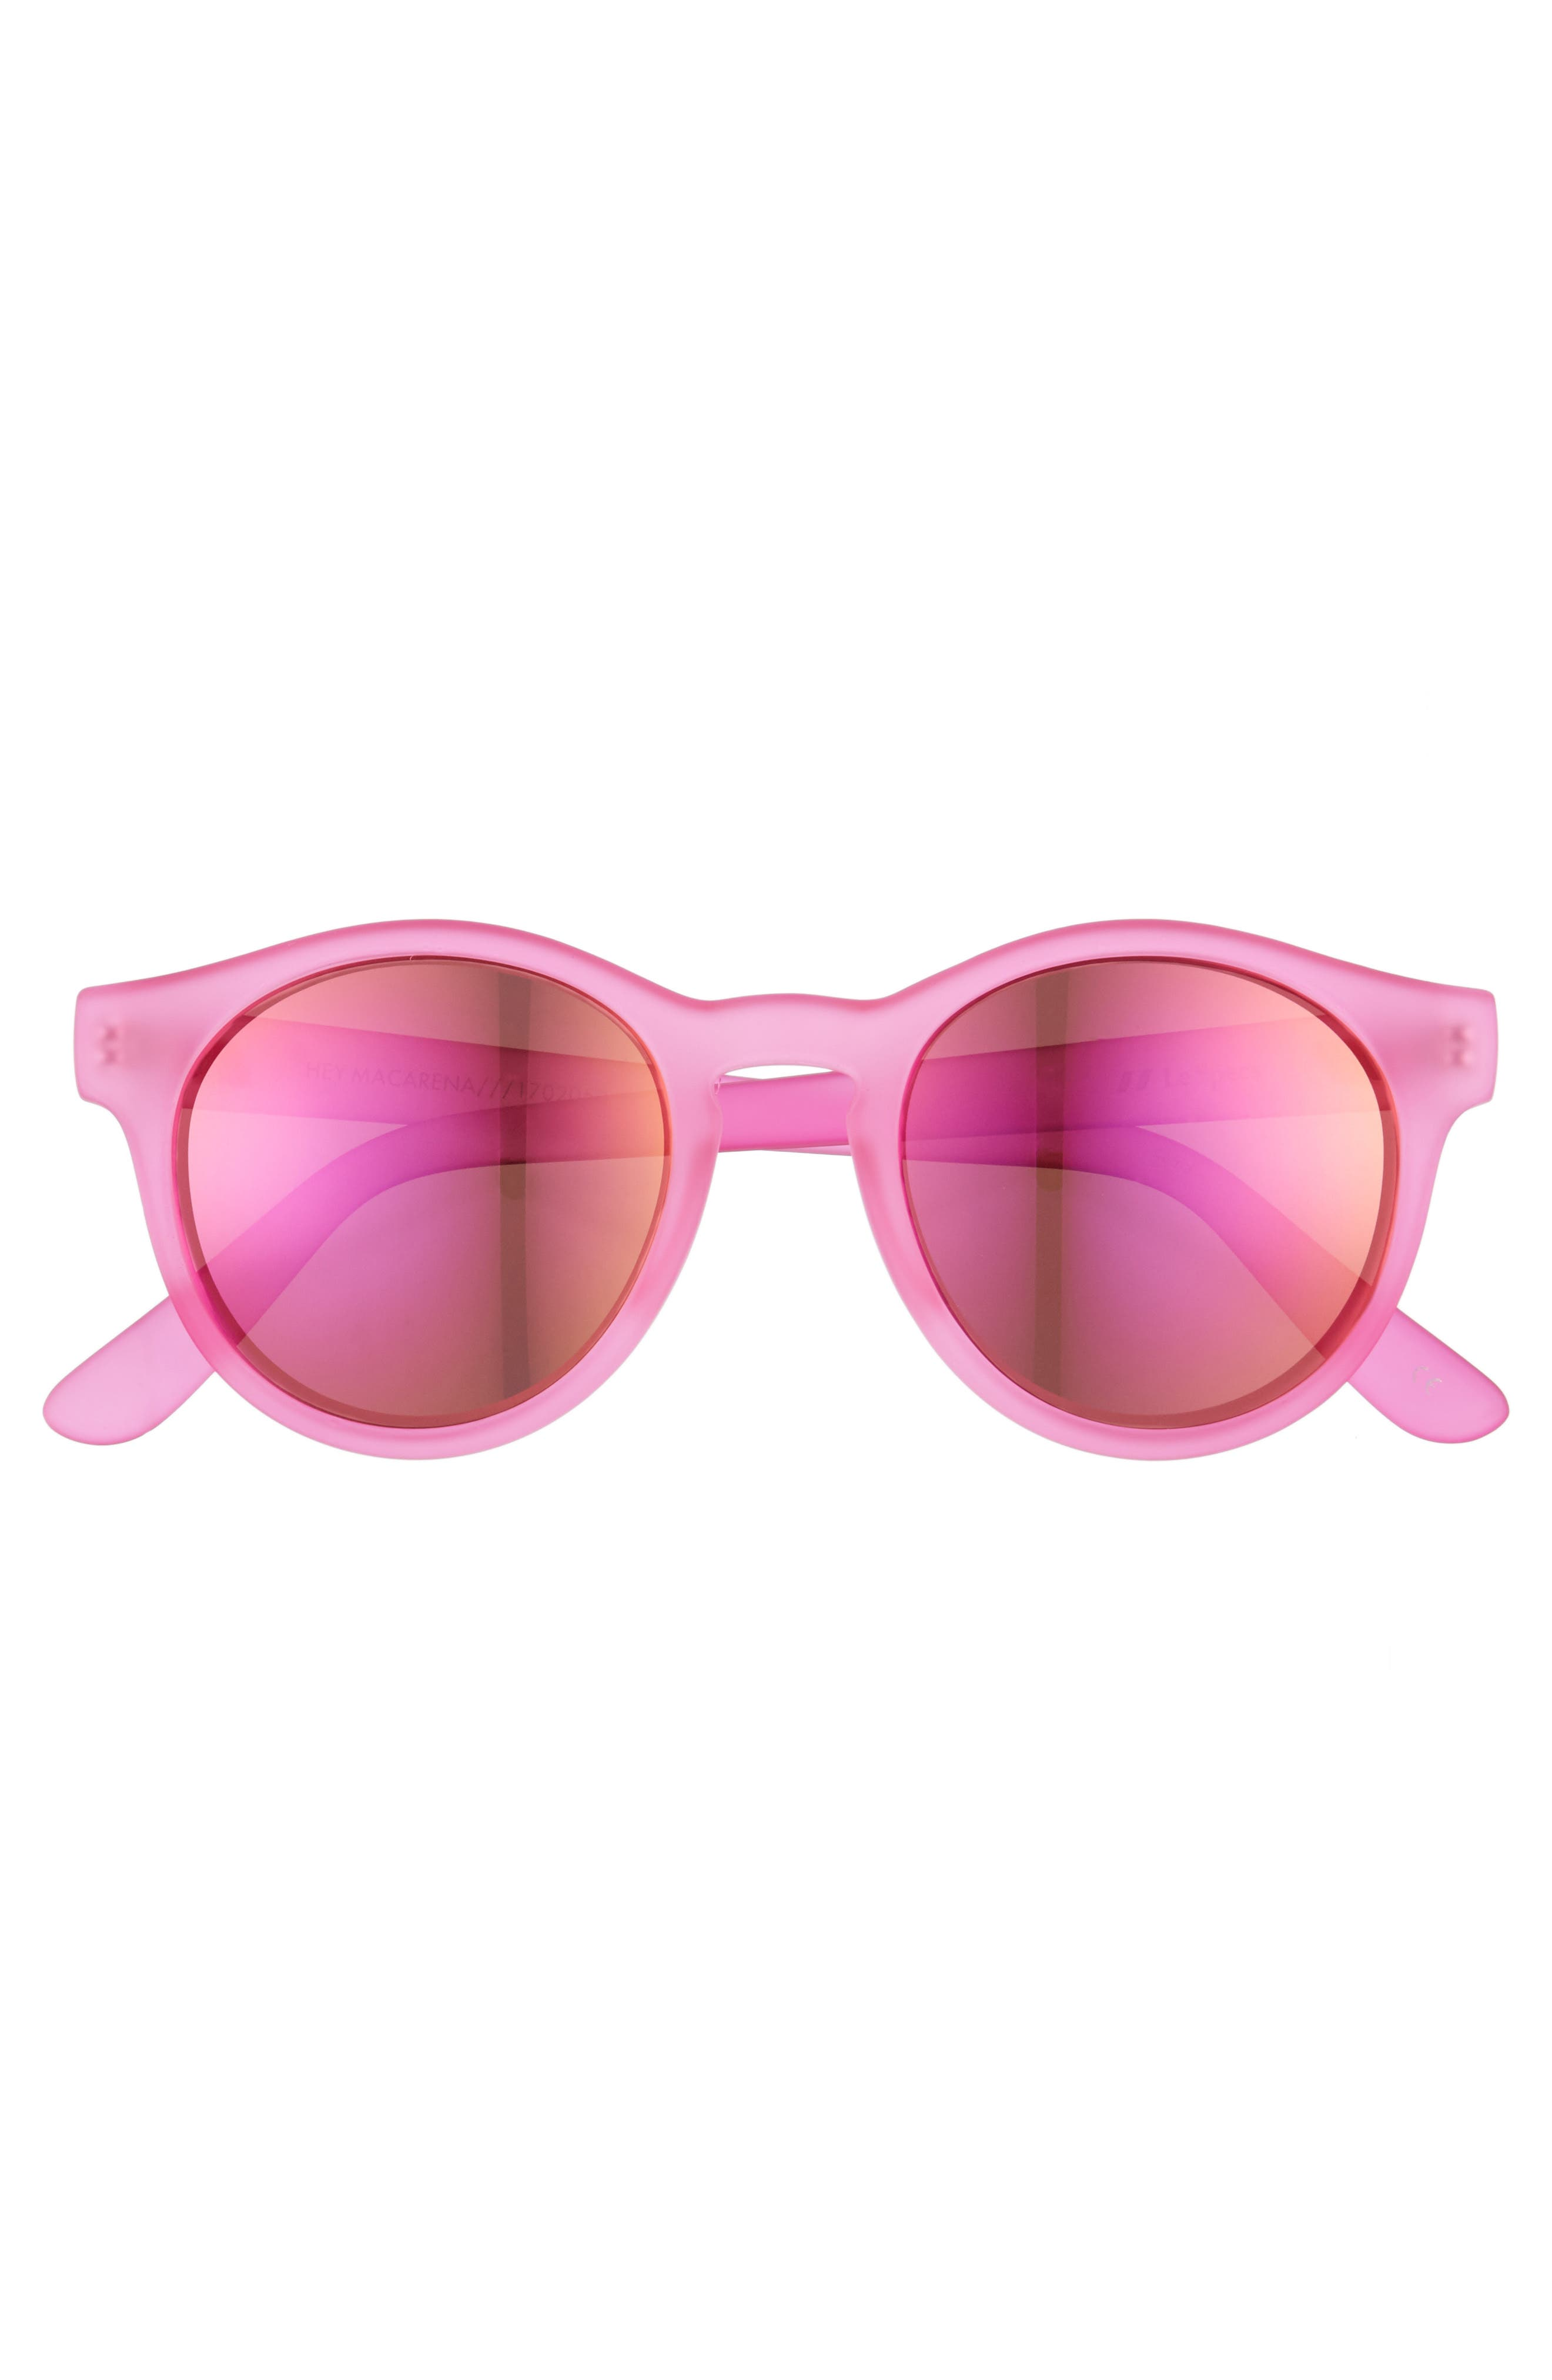 Hey Macarena 51mm Round Sunglasses,                             Alternate thumbnail 3, color,                             Matte Magenta